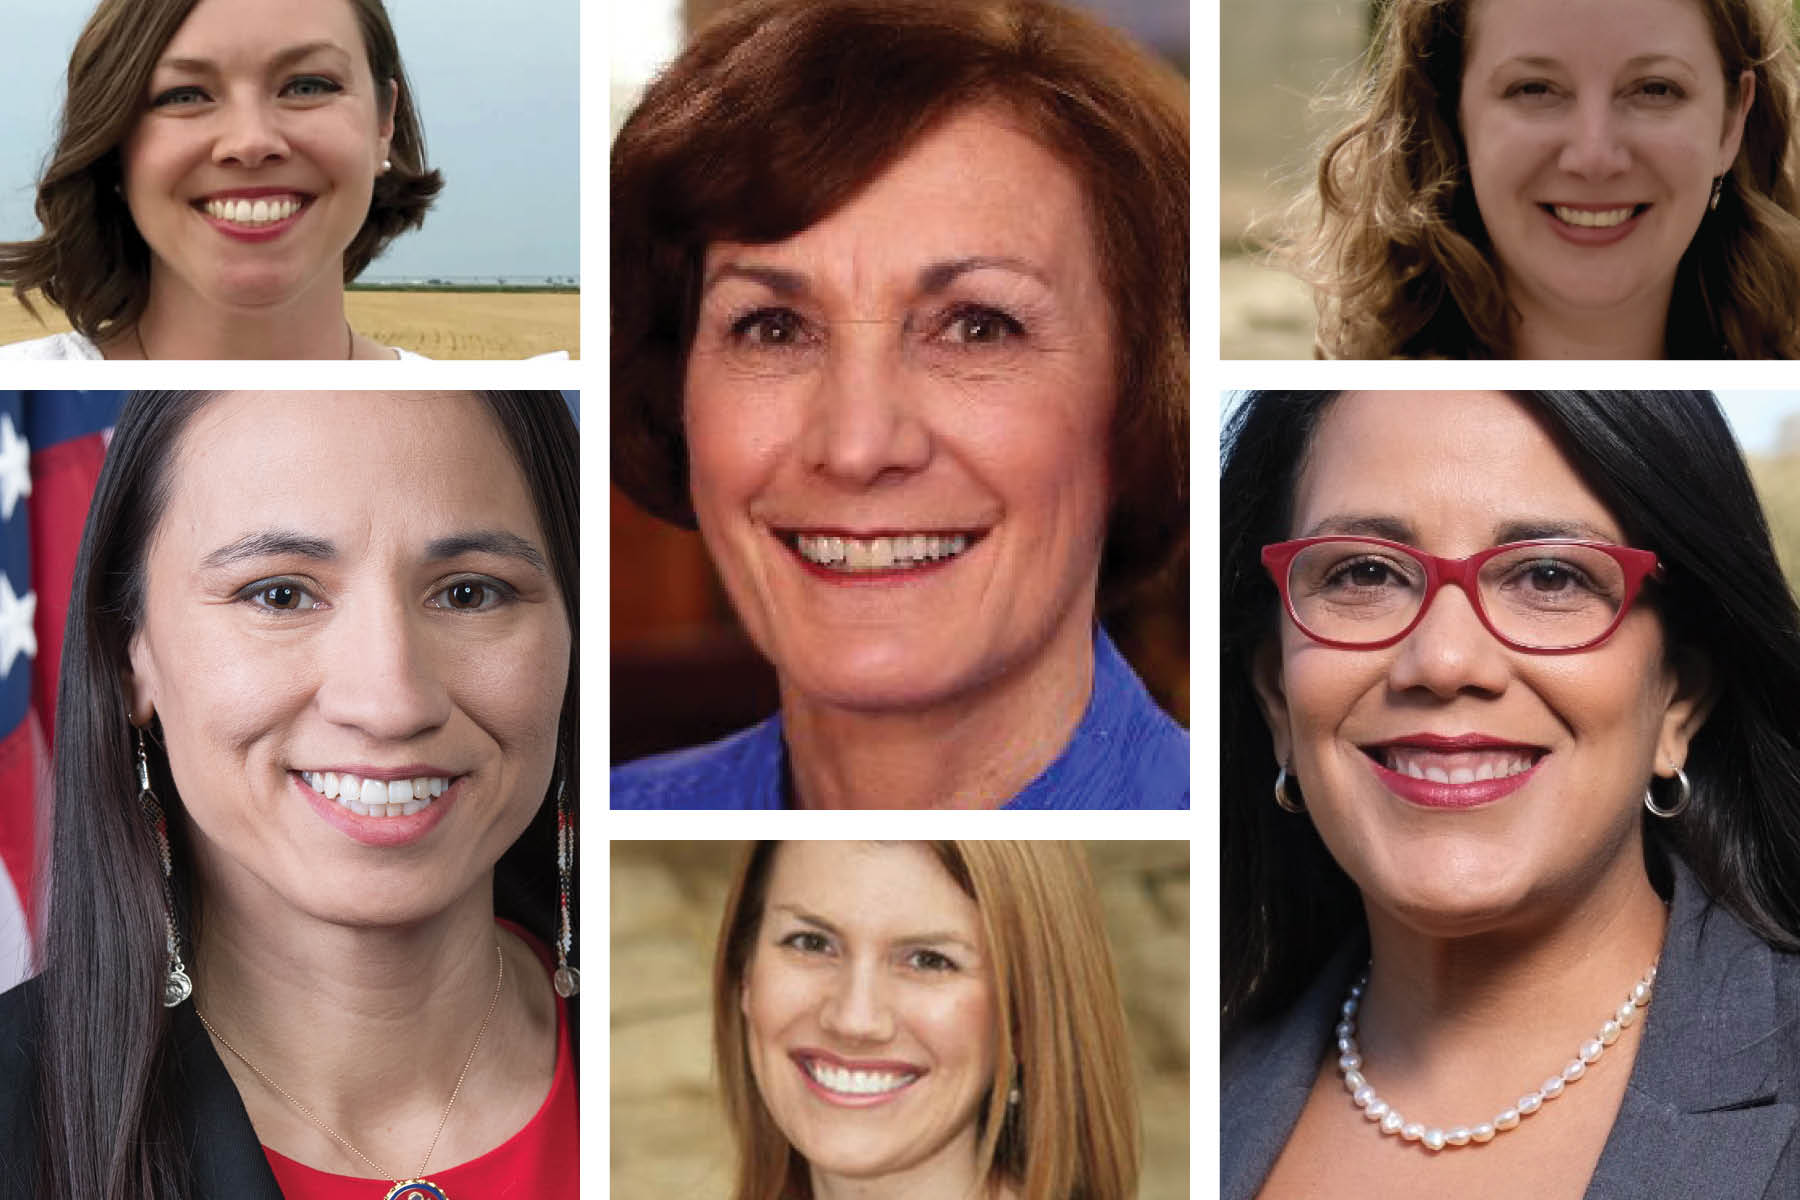 Kansas makes history as record number of U.S. women bid for Congress